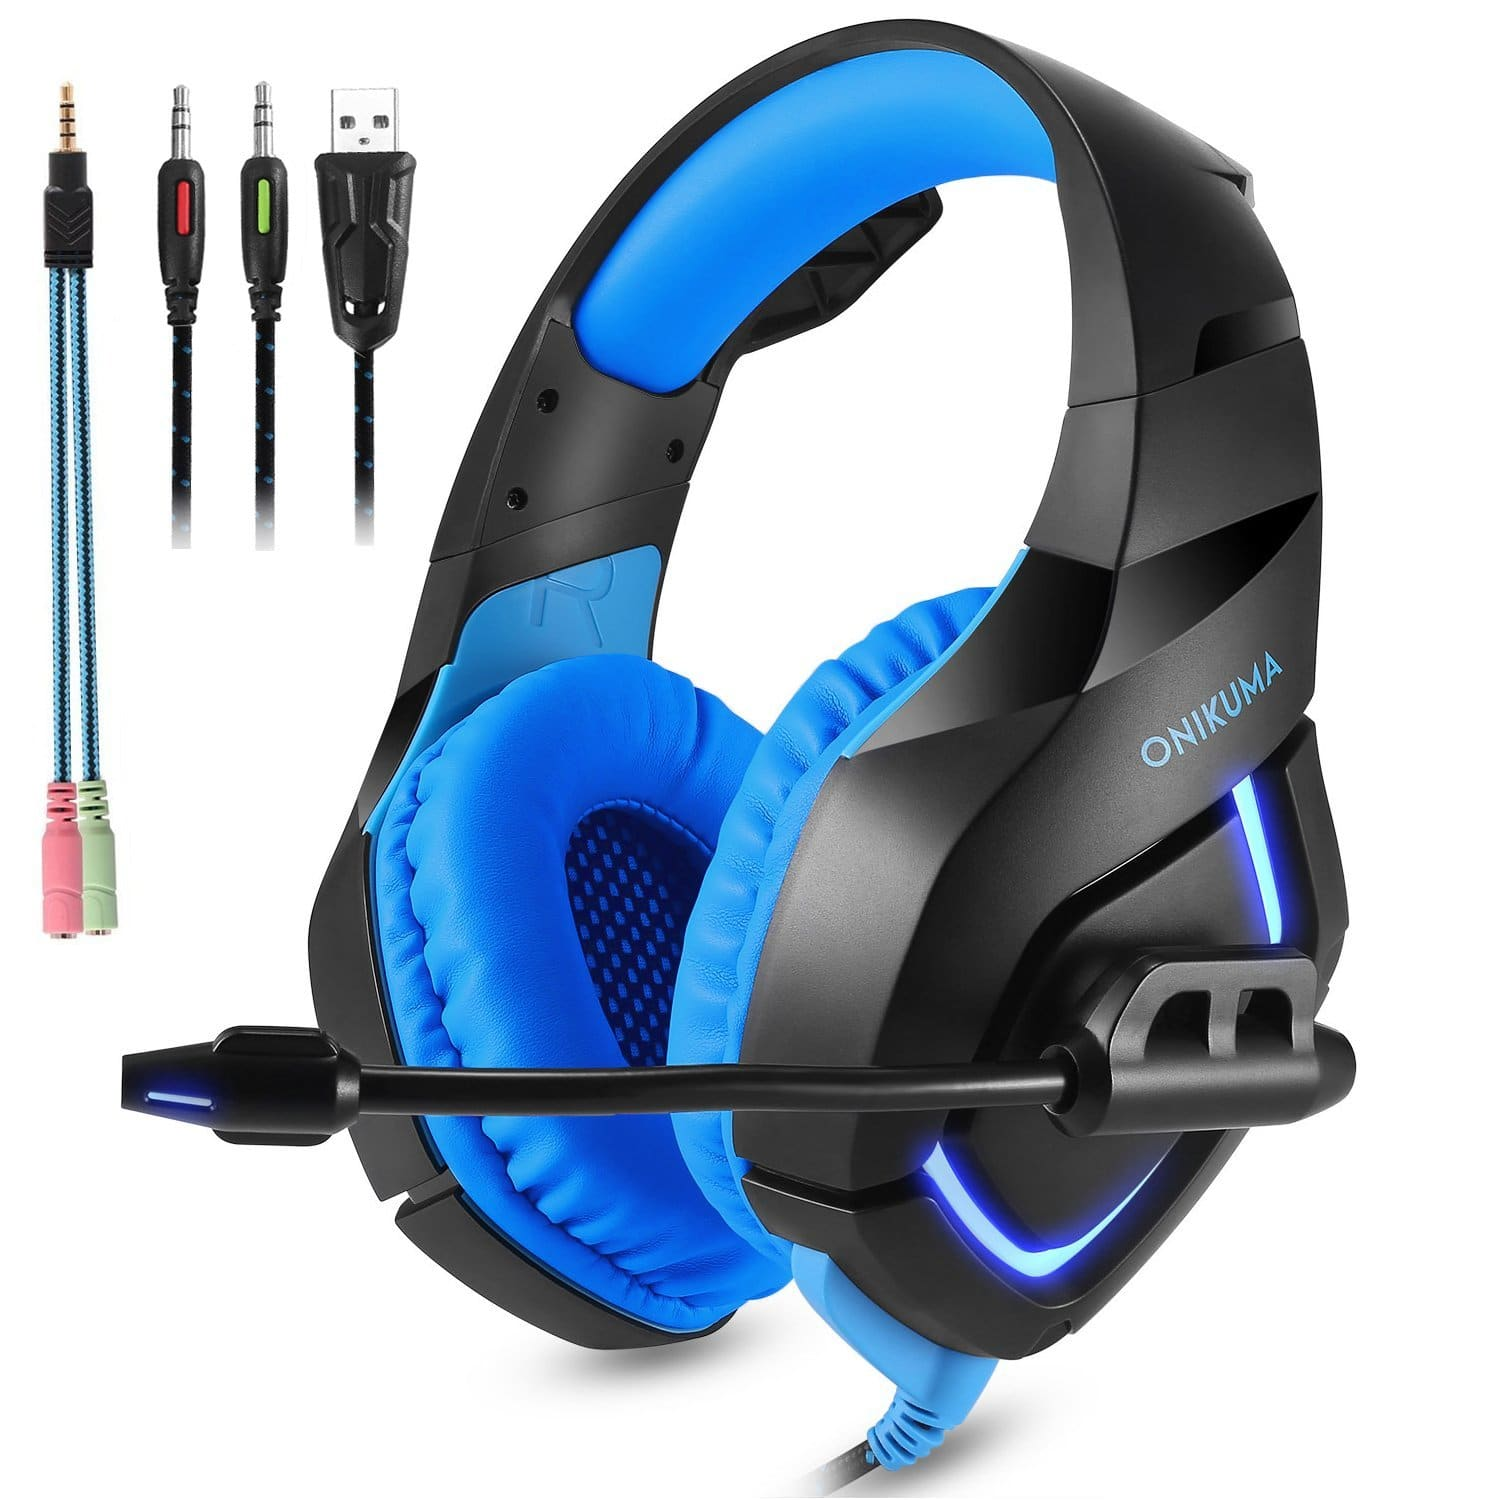 Gaming Headset with Mic for Xbox One, PS4, Nintendo Switch $12.99 AC at Amazon